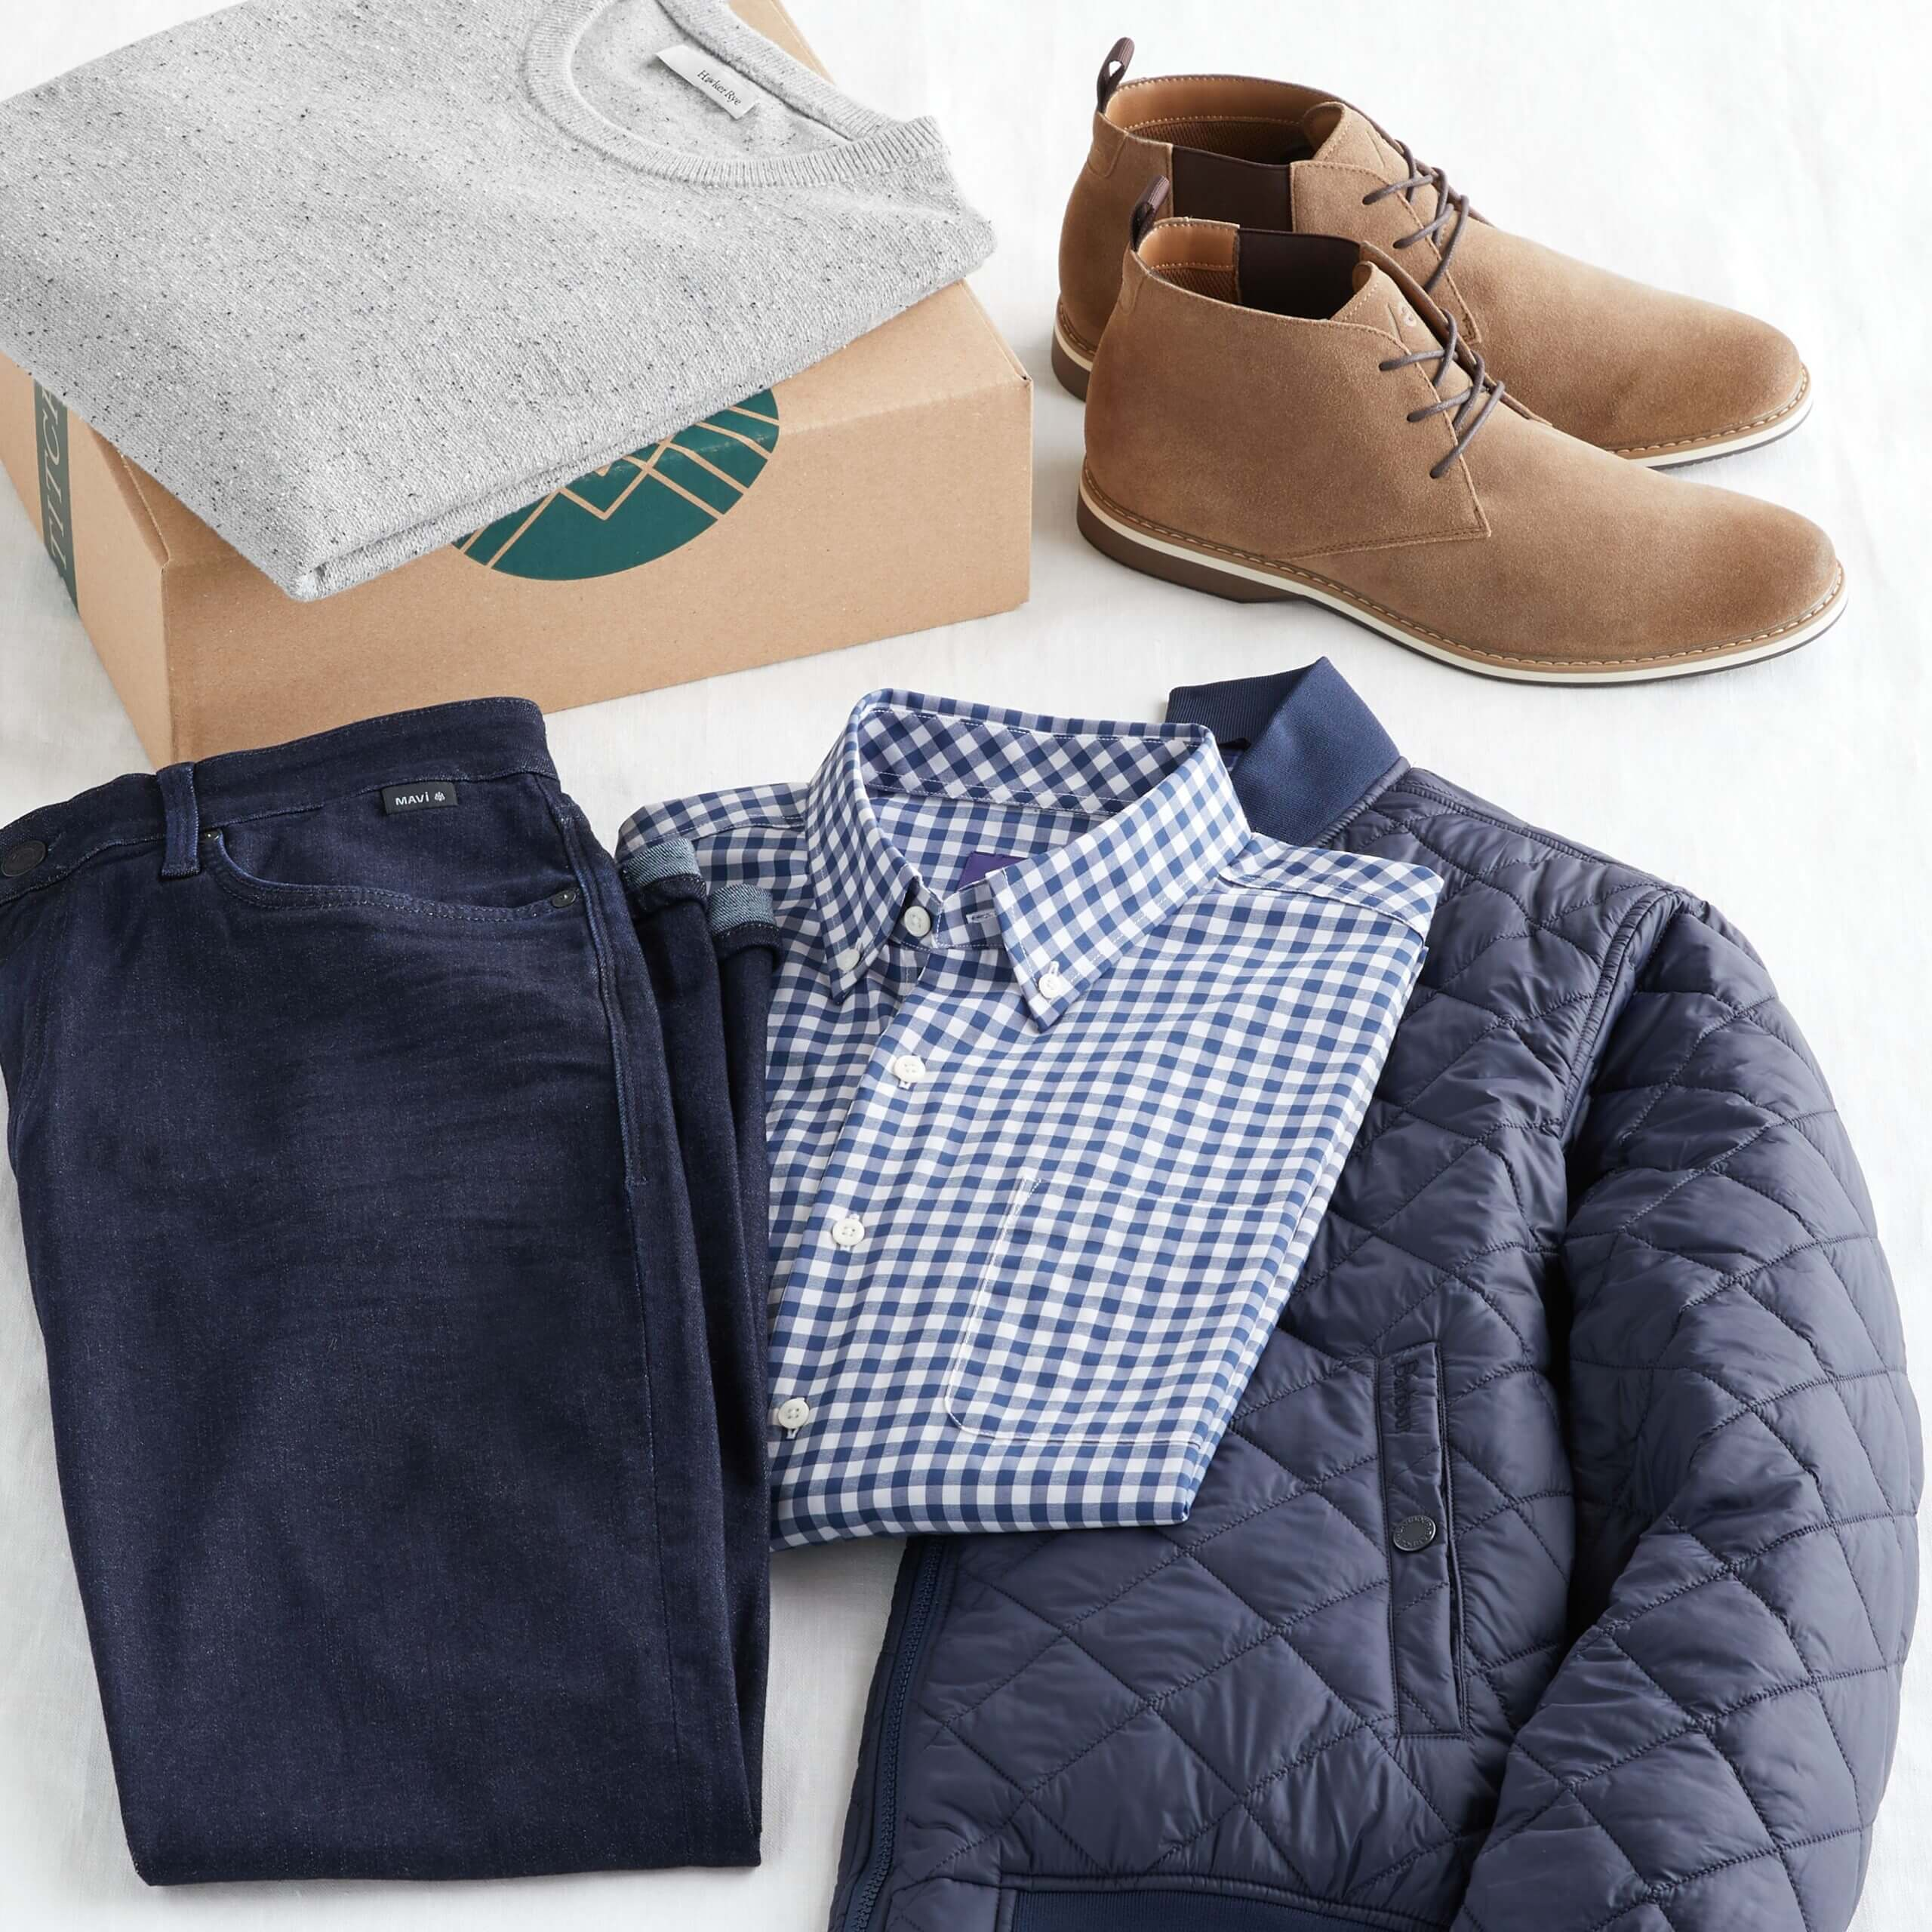 Stitch Fix Men's outfit laydown featuring grey pullover on Stitch Fix delivery box, next to brown chukkas, navy quilted jacket, blue collared button-down and dark wash jeans.